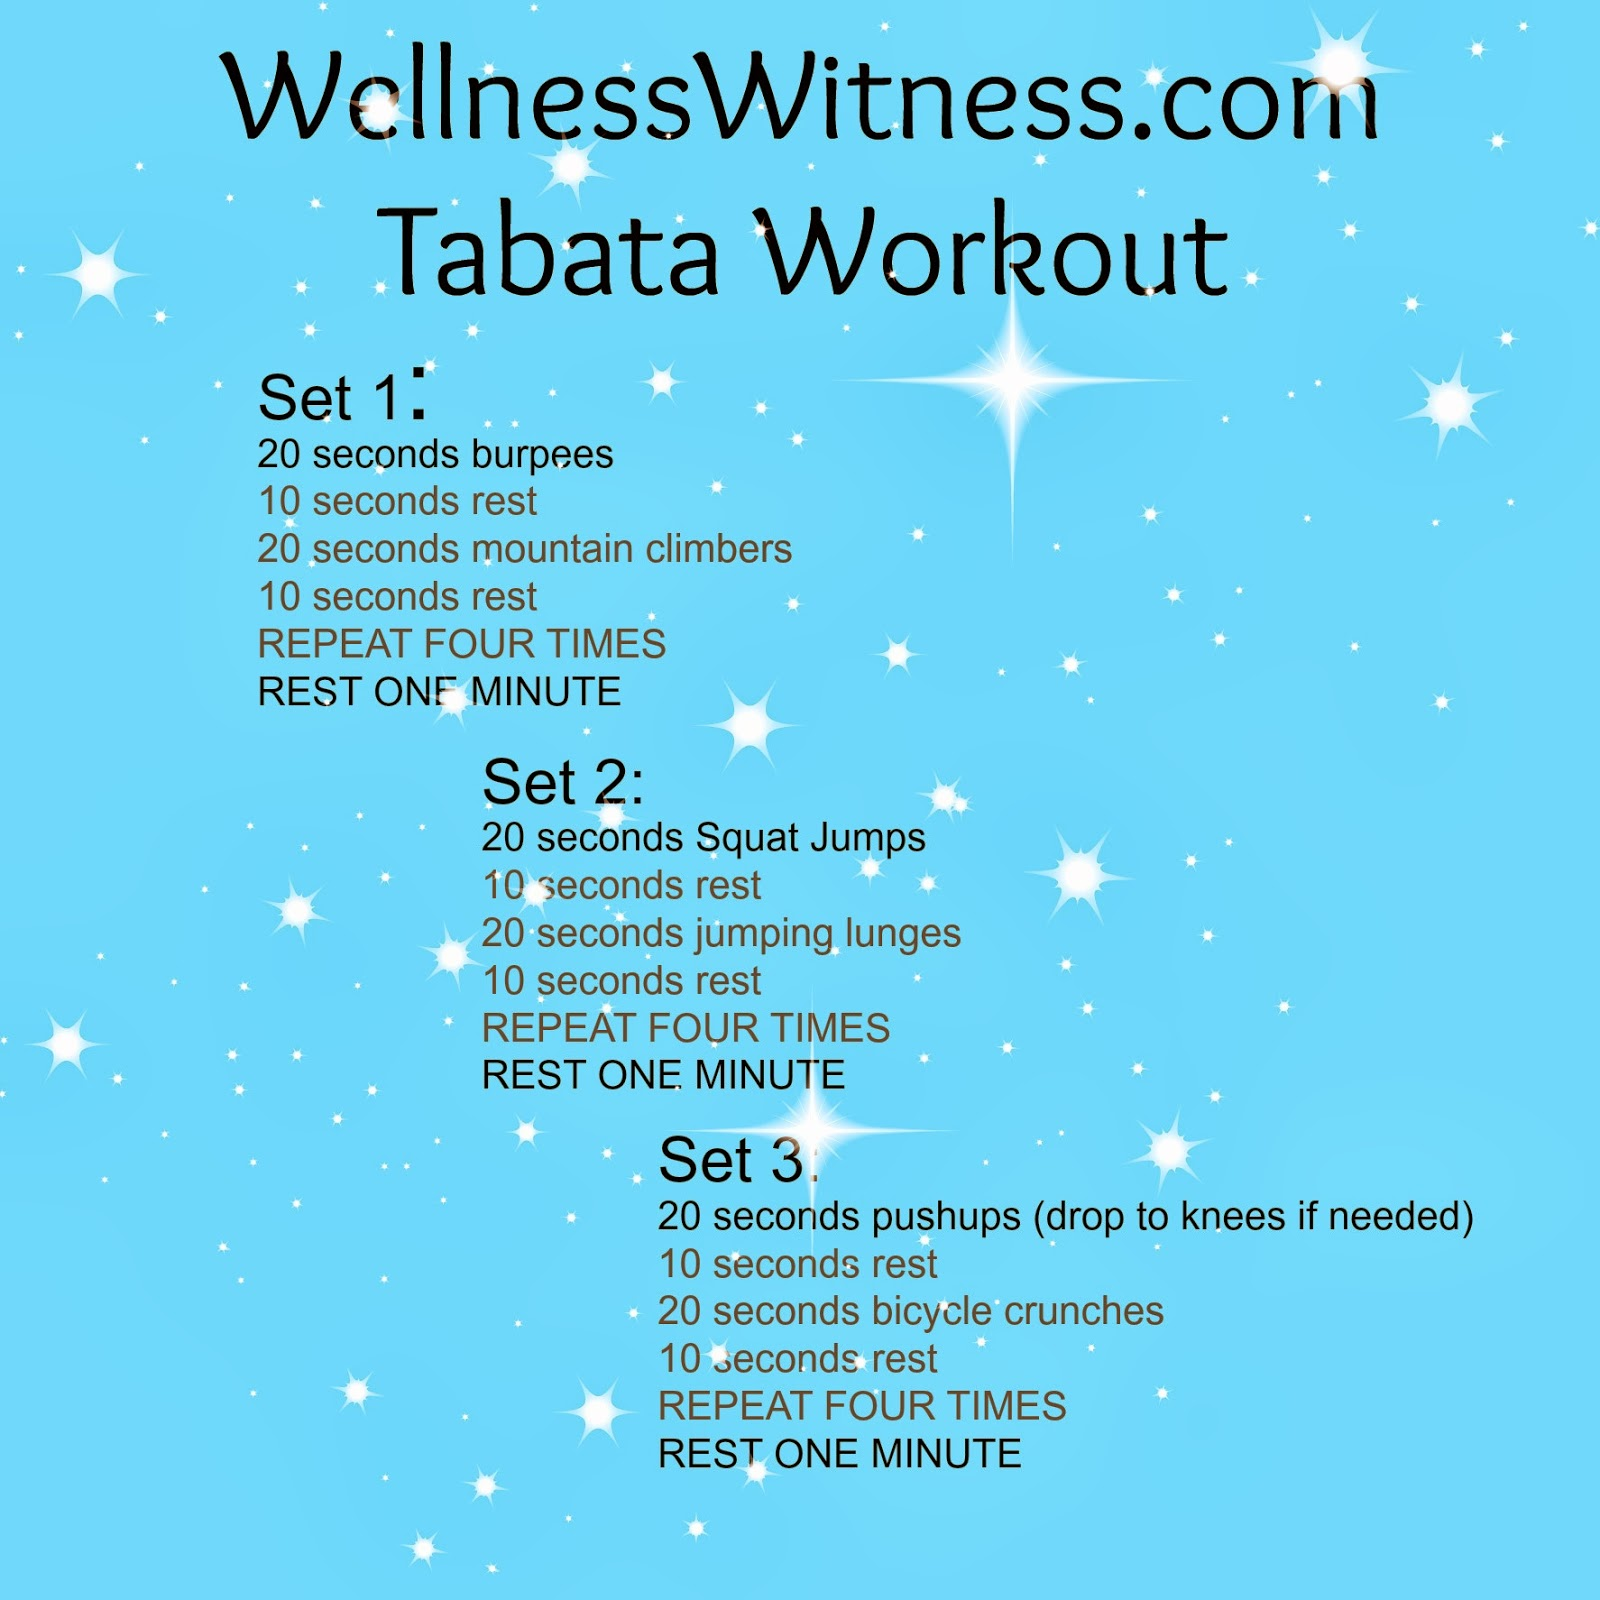 At Home Workout IdeaTabata Style Wellness Witness